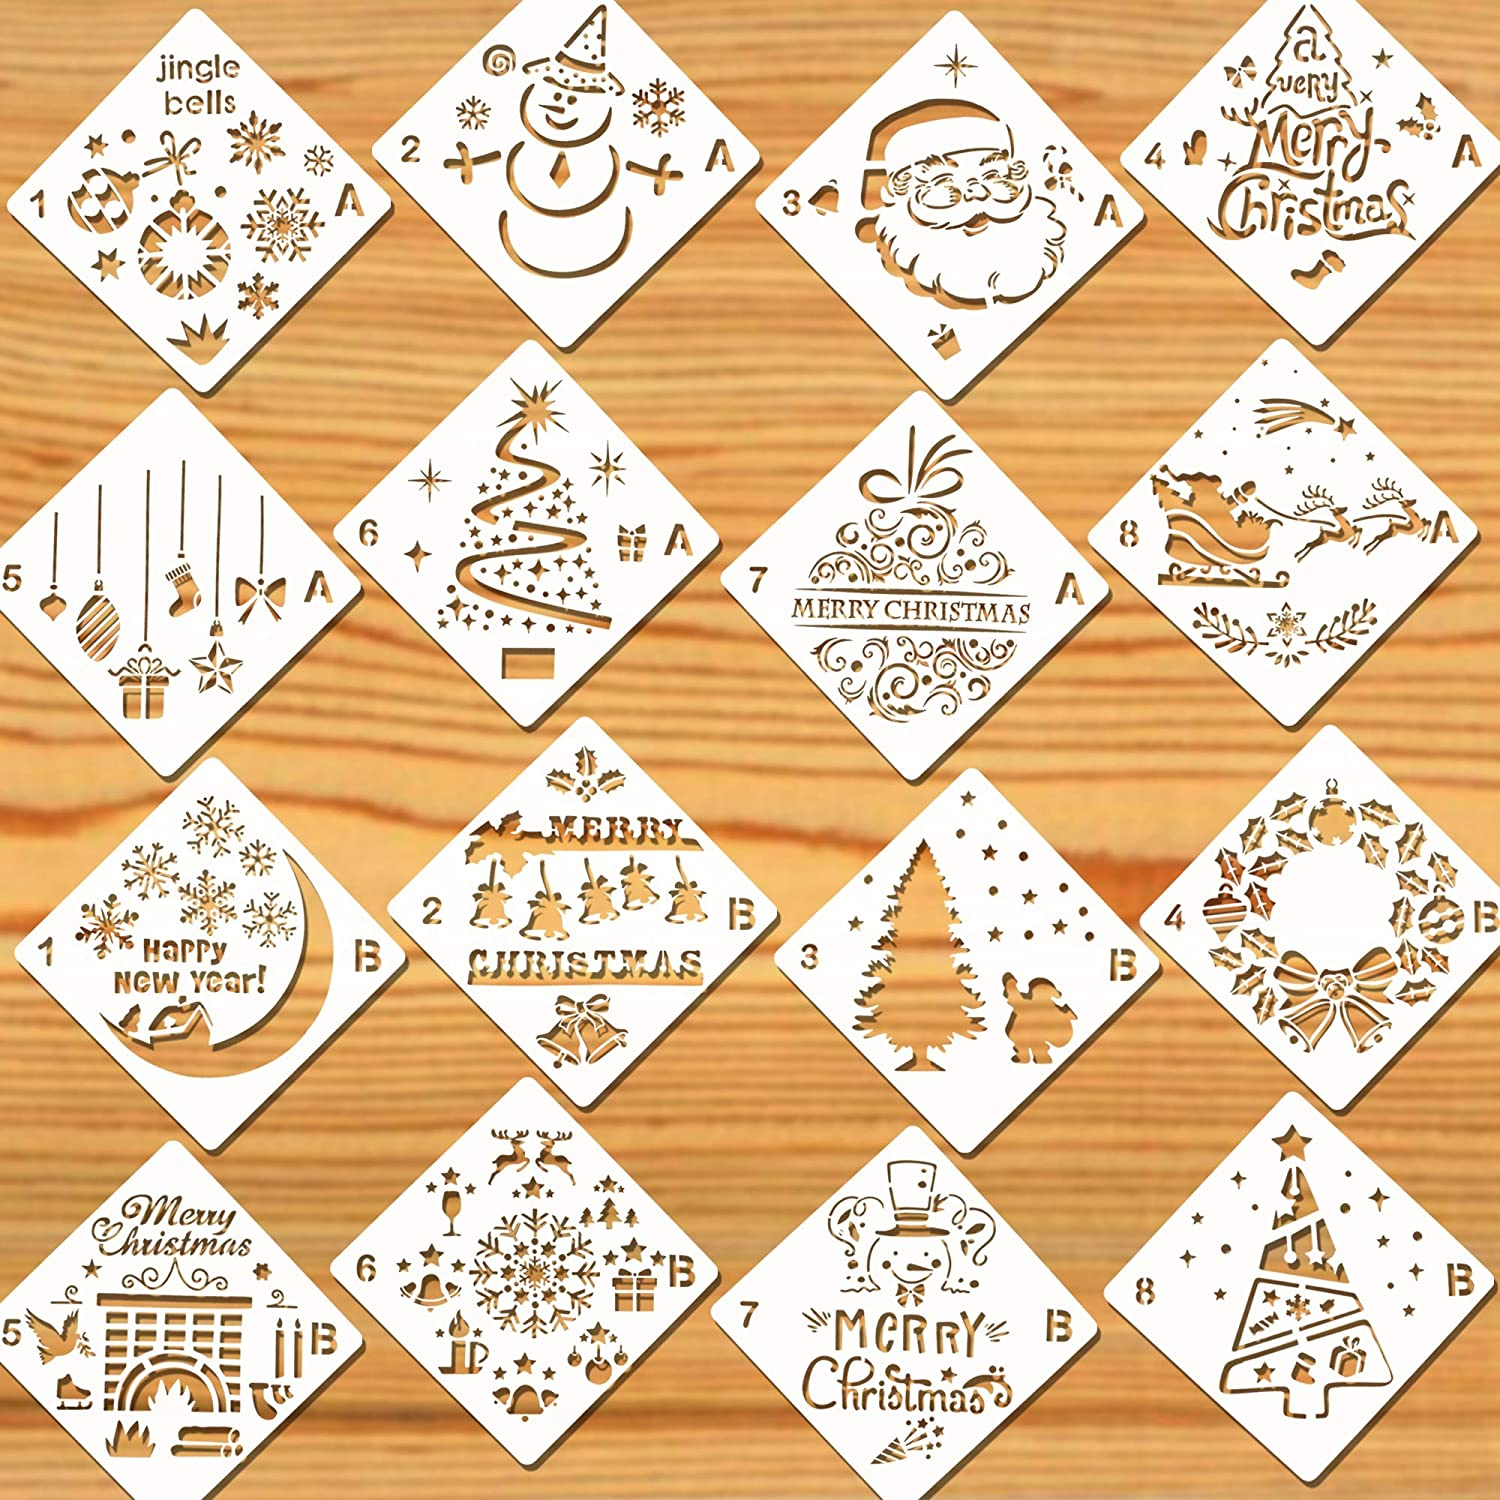 Christmas Stencils For Wood.Konsait 16pack Christmas Stencils Templates Reusable Plastic Craft Drawing Painting Template Xmas Stencils For Greeting Cards Albums Scrapbook